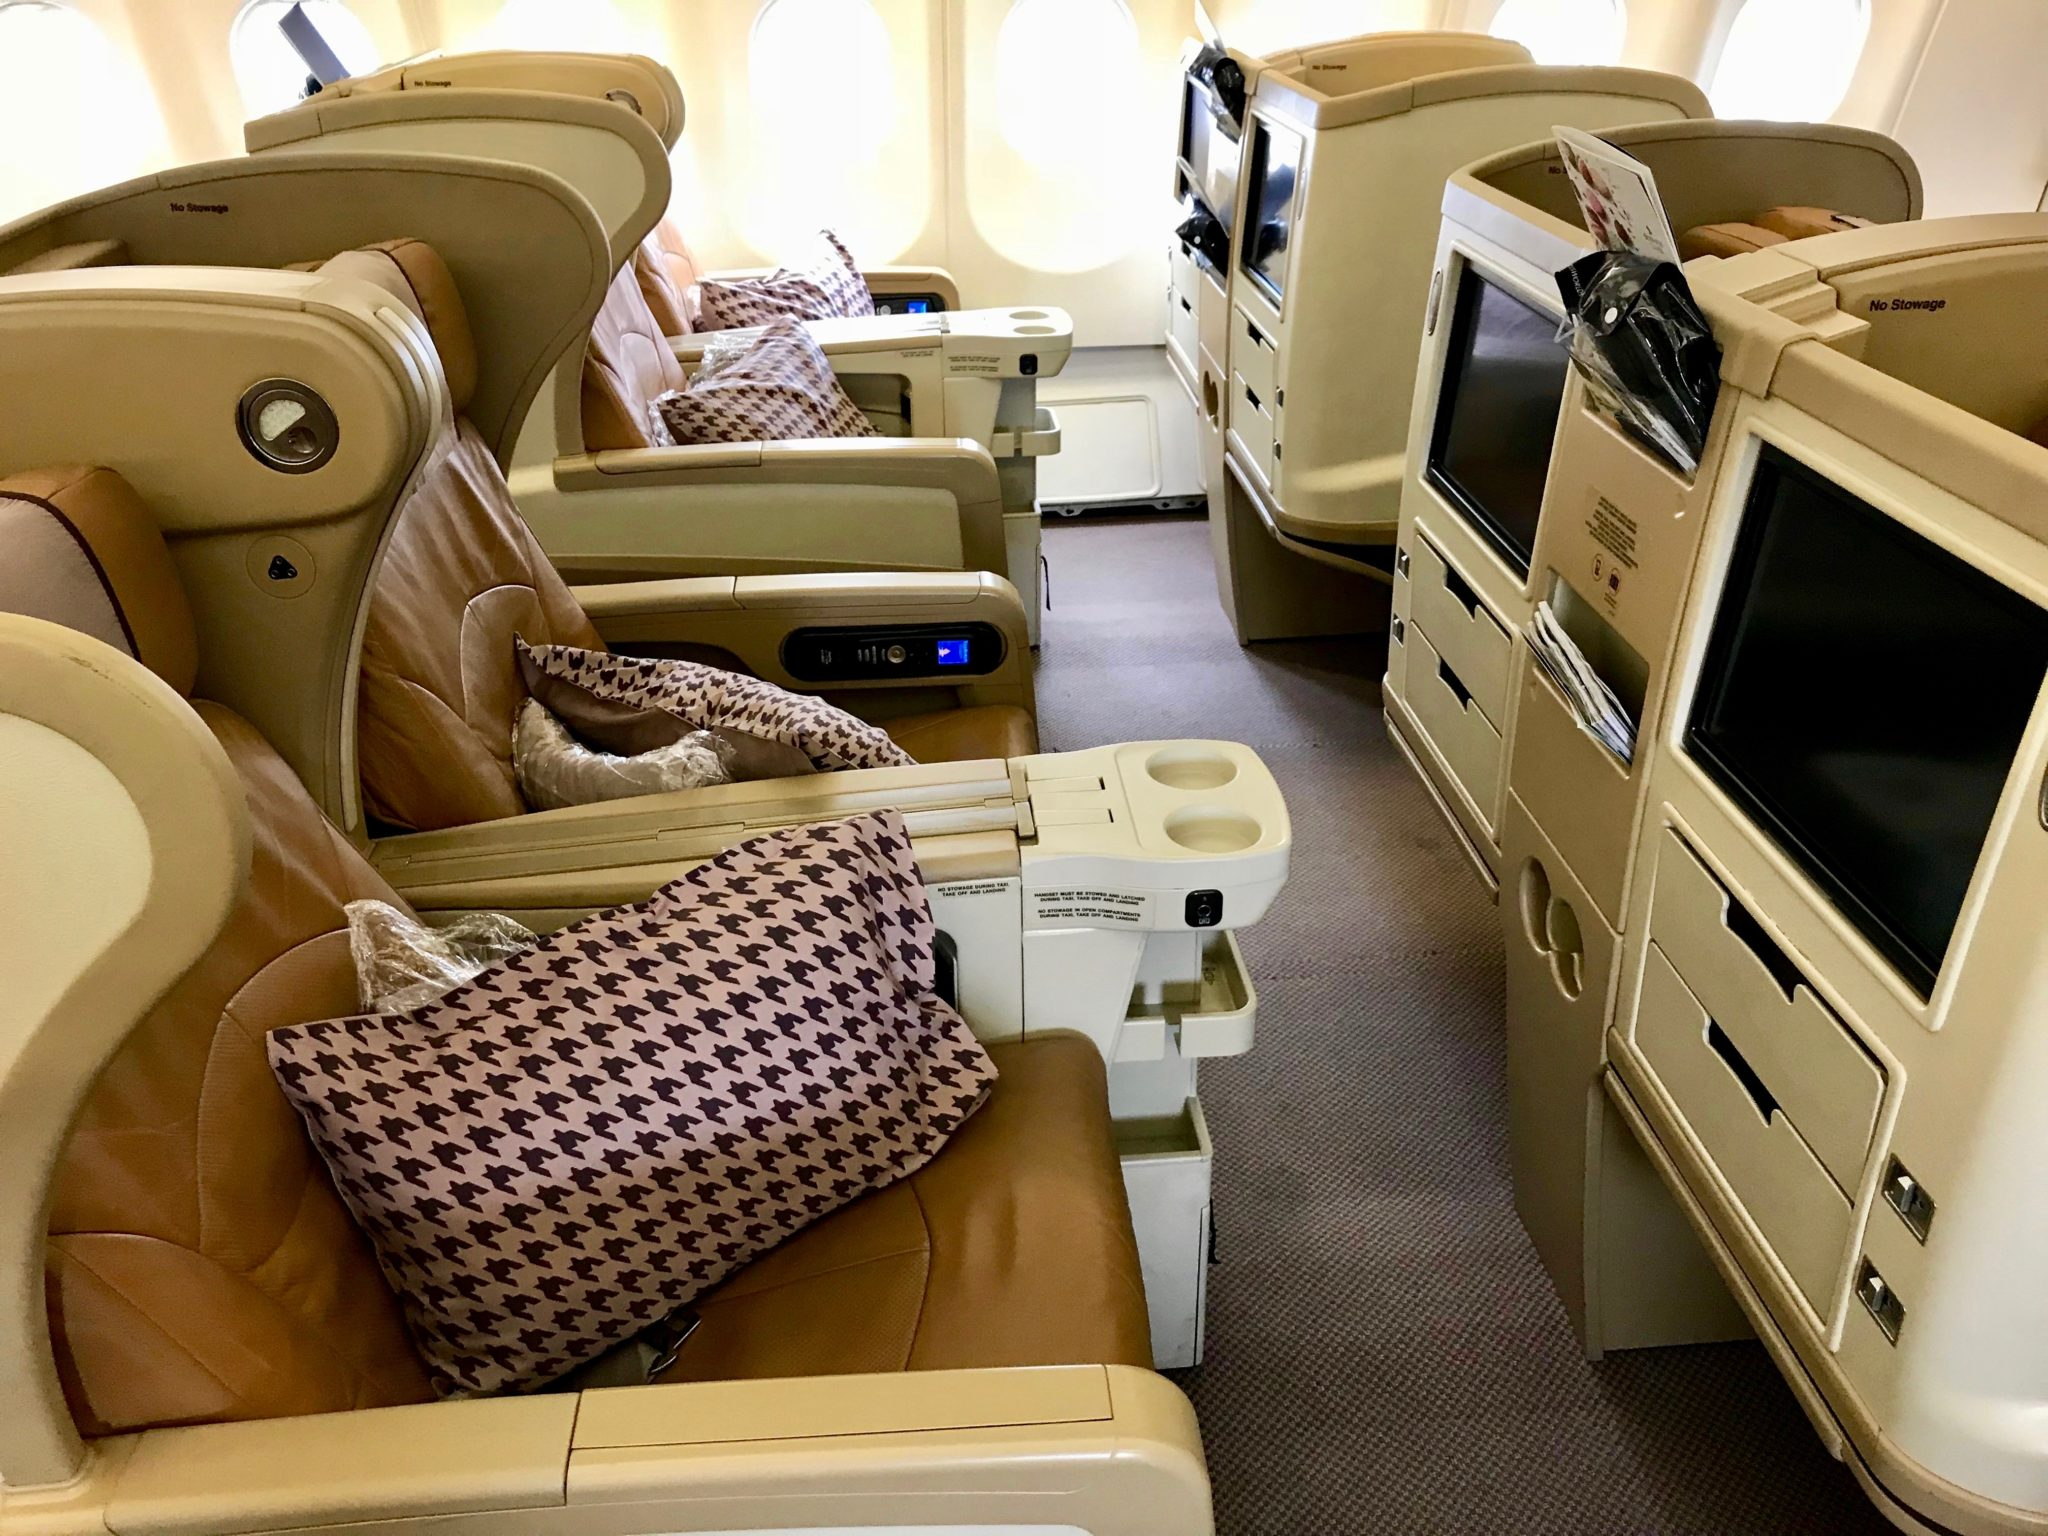 Singapore Airlines Business Class A330 - Interior Seats (2)